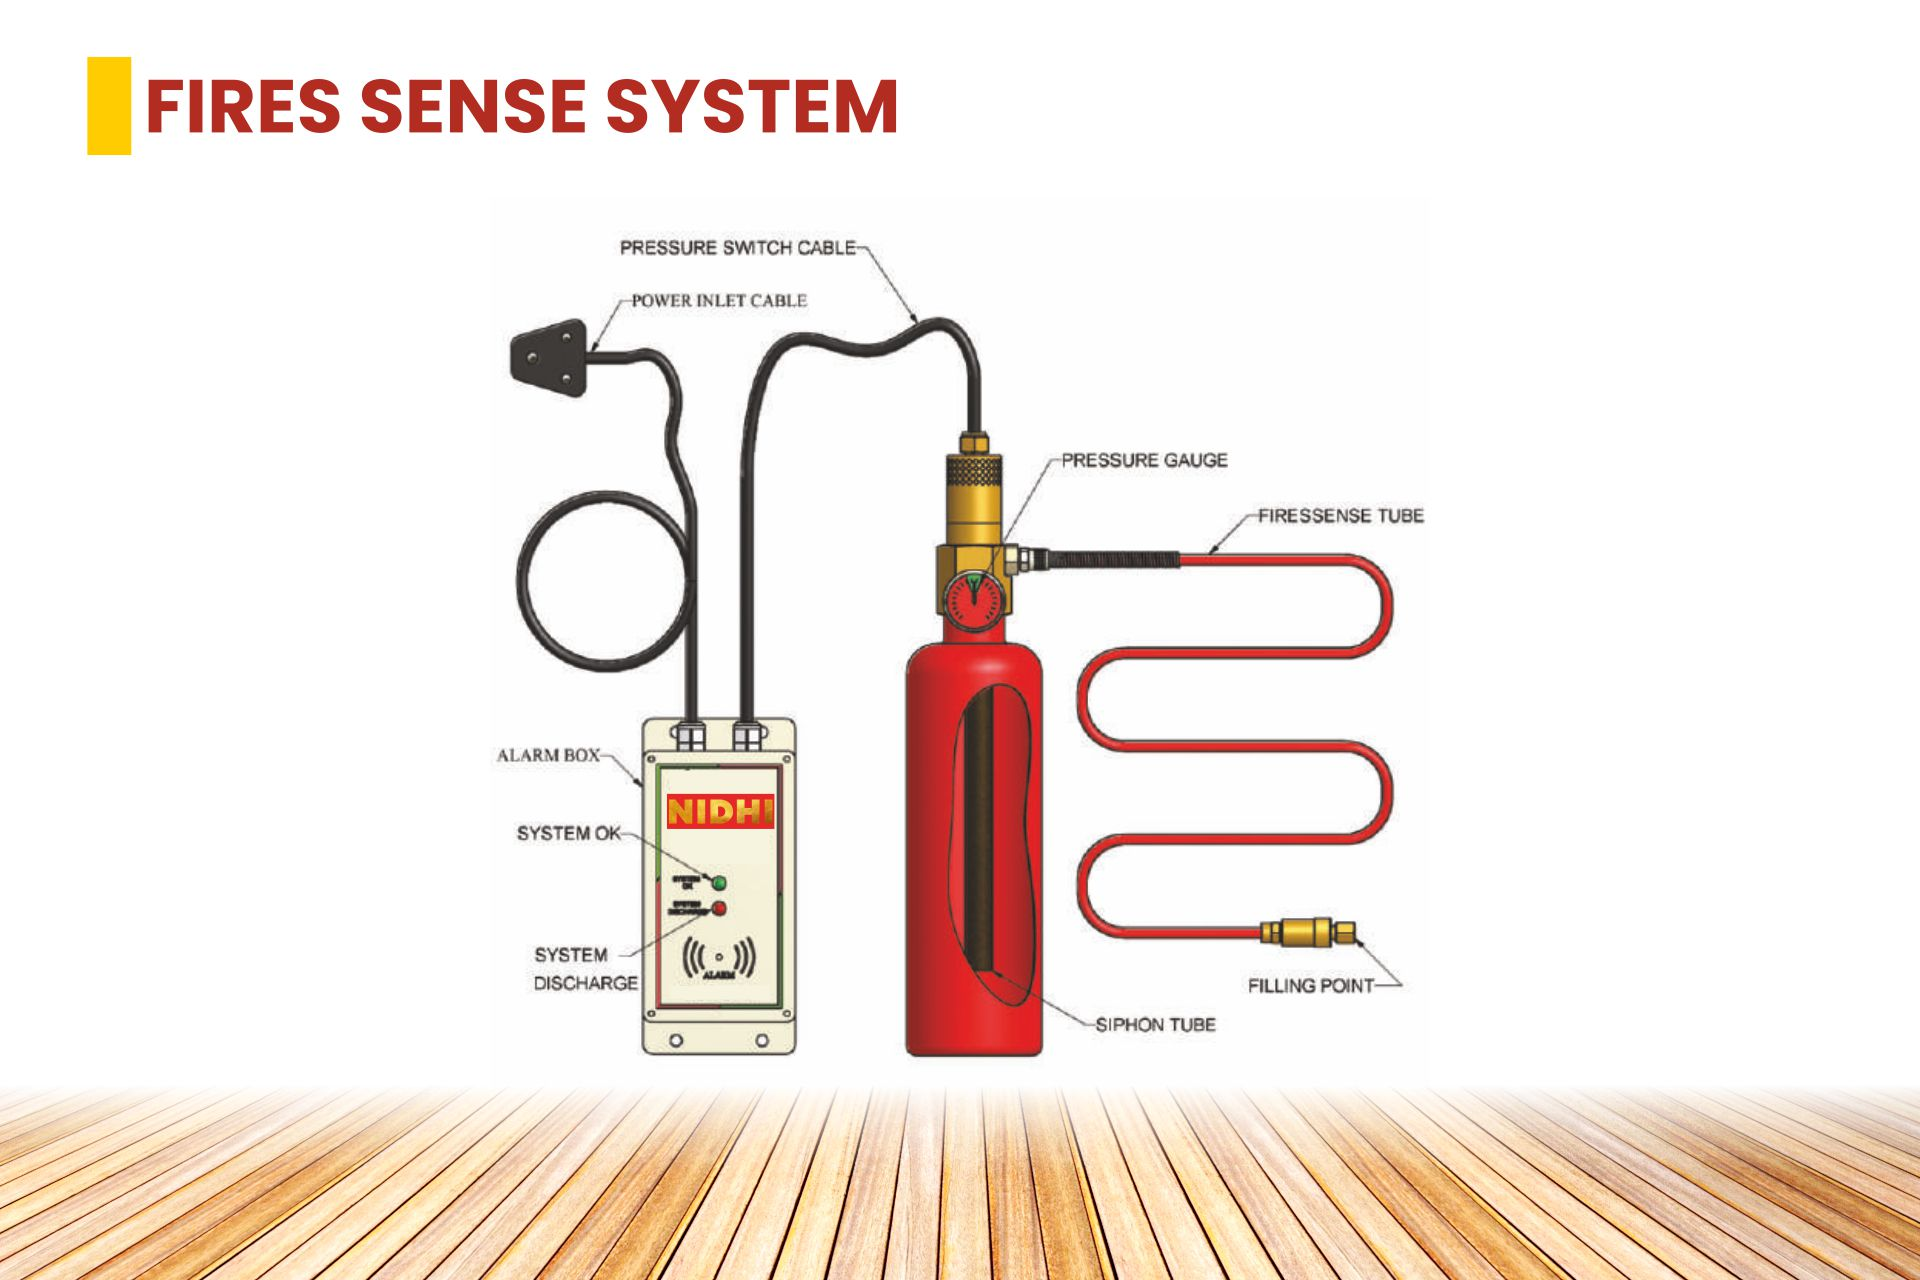 FIRE SENSE SYSTEM Product 1